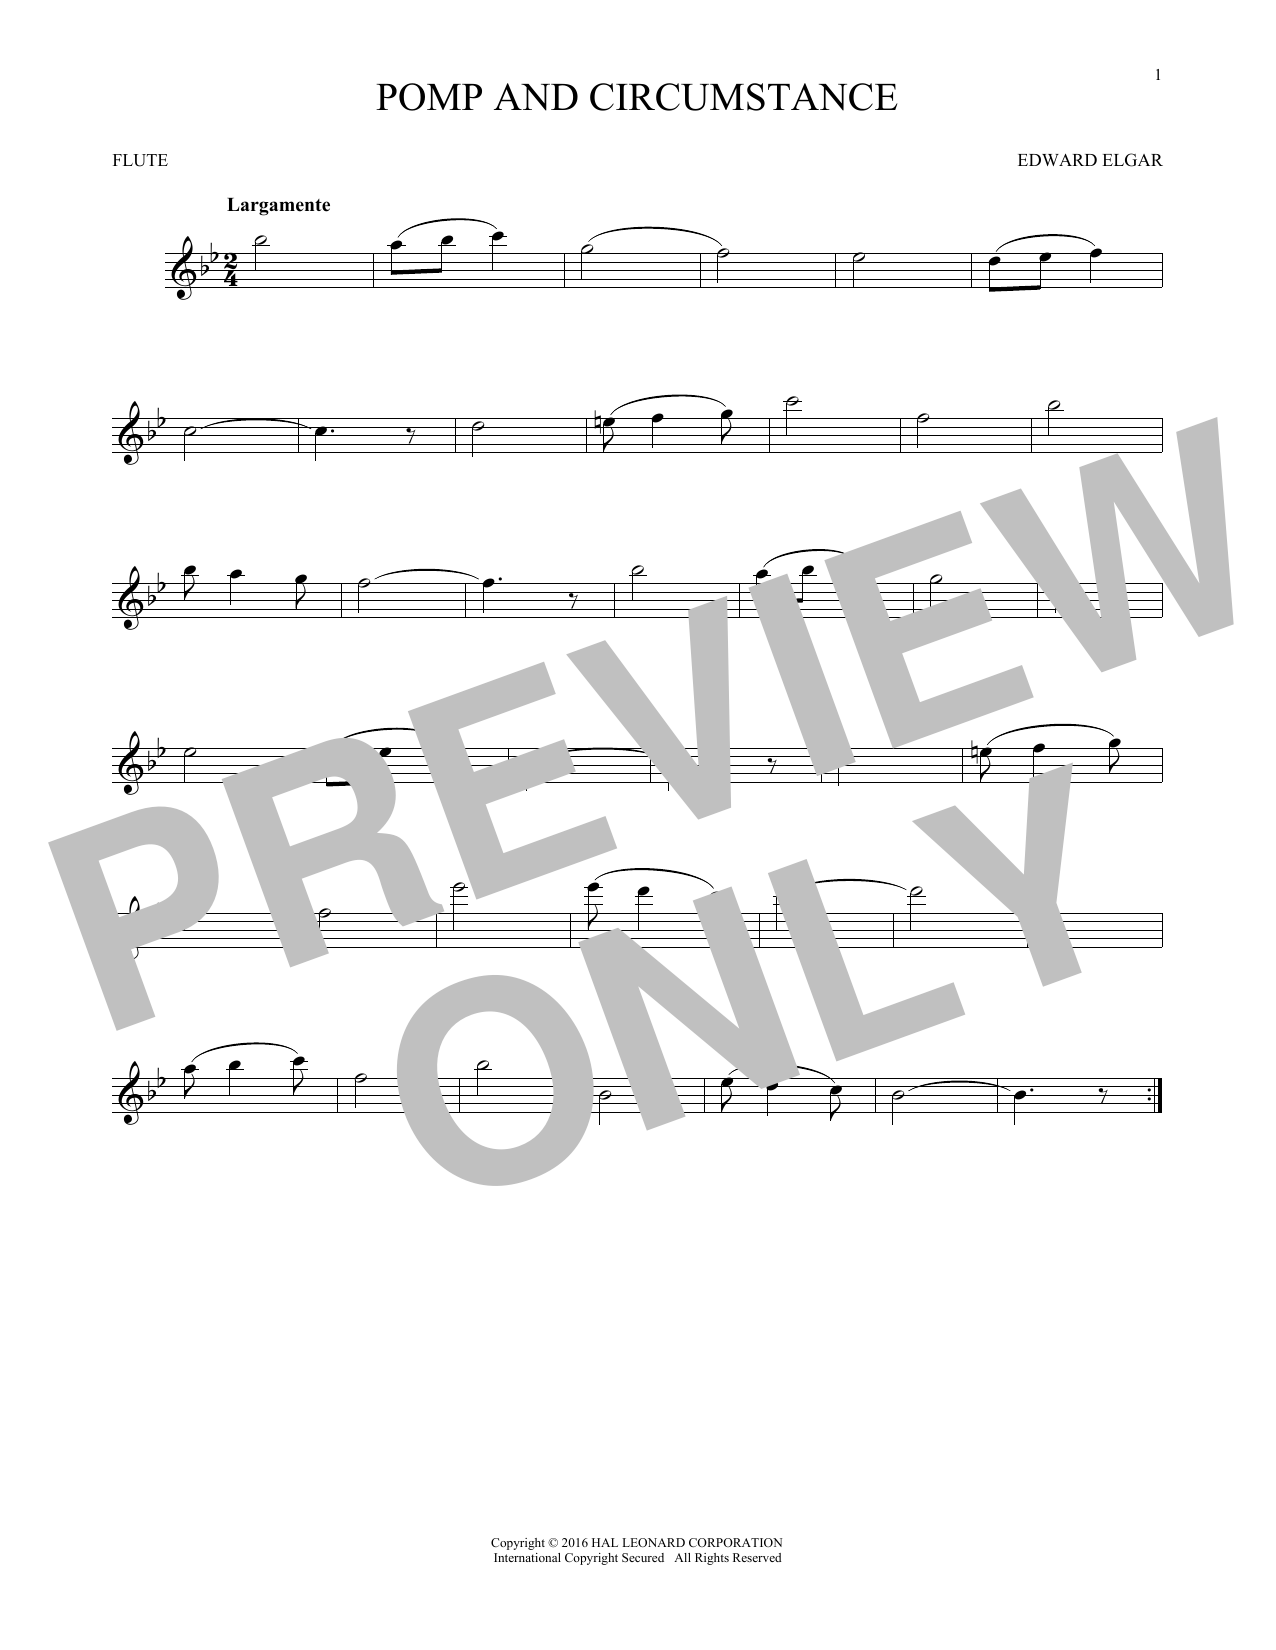 Pomp And Circumstance (Flute Solo)